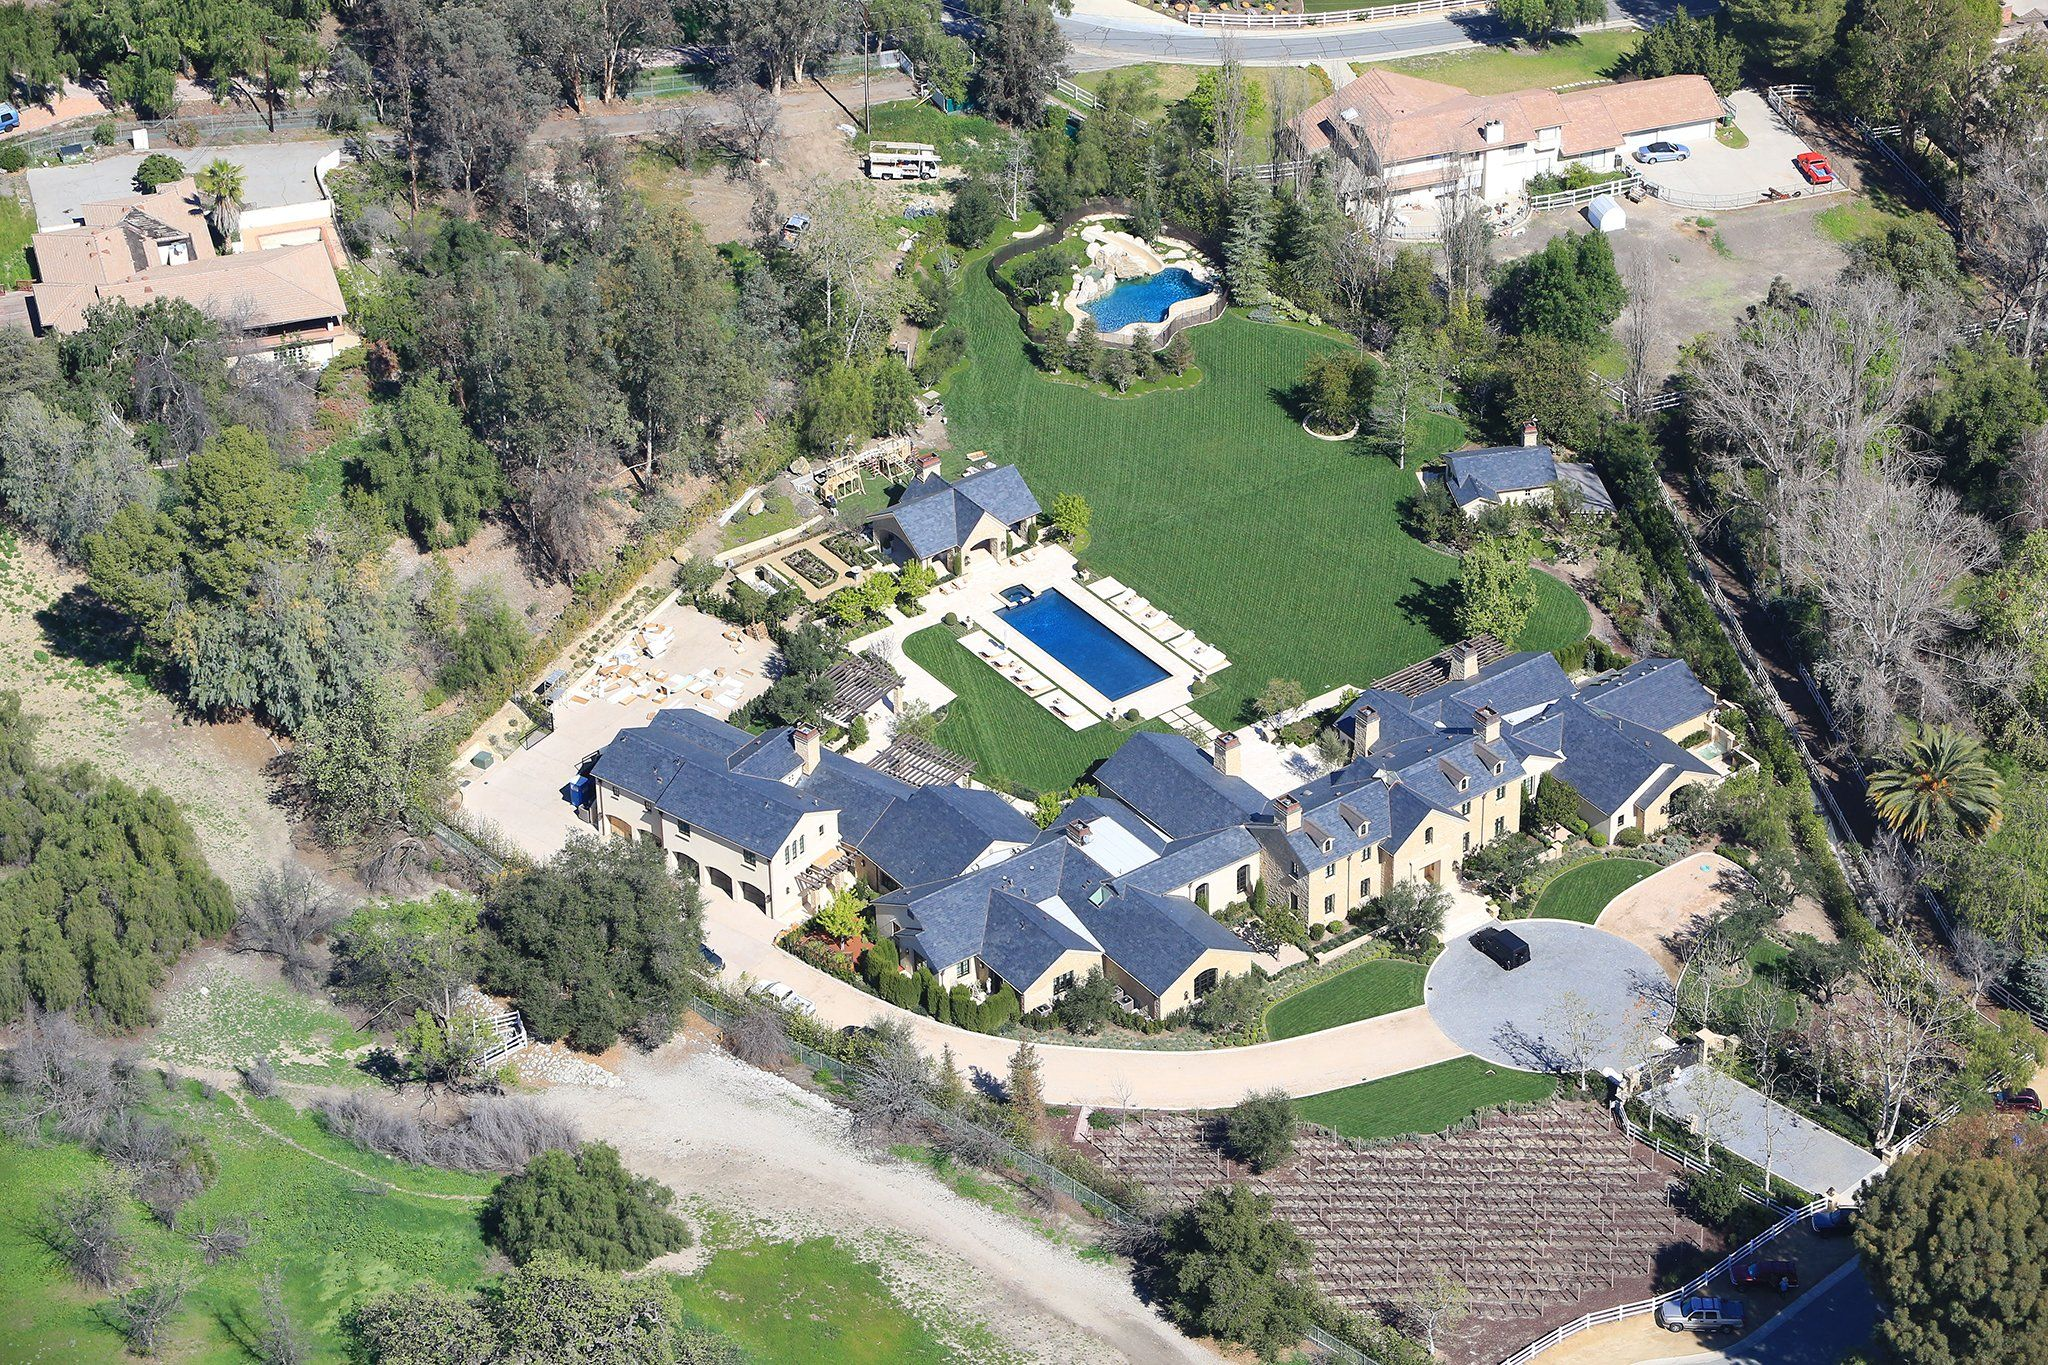 Kim Kardashian And Kanye West S Epic Backyard From A Playground For North To A Pair Of Pools Kim And Kanye House Celebrity Houses Home Pictures